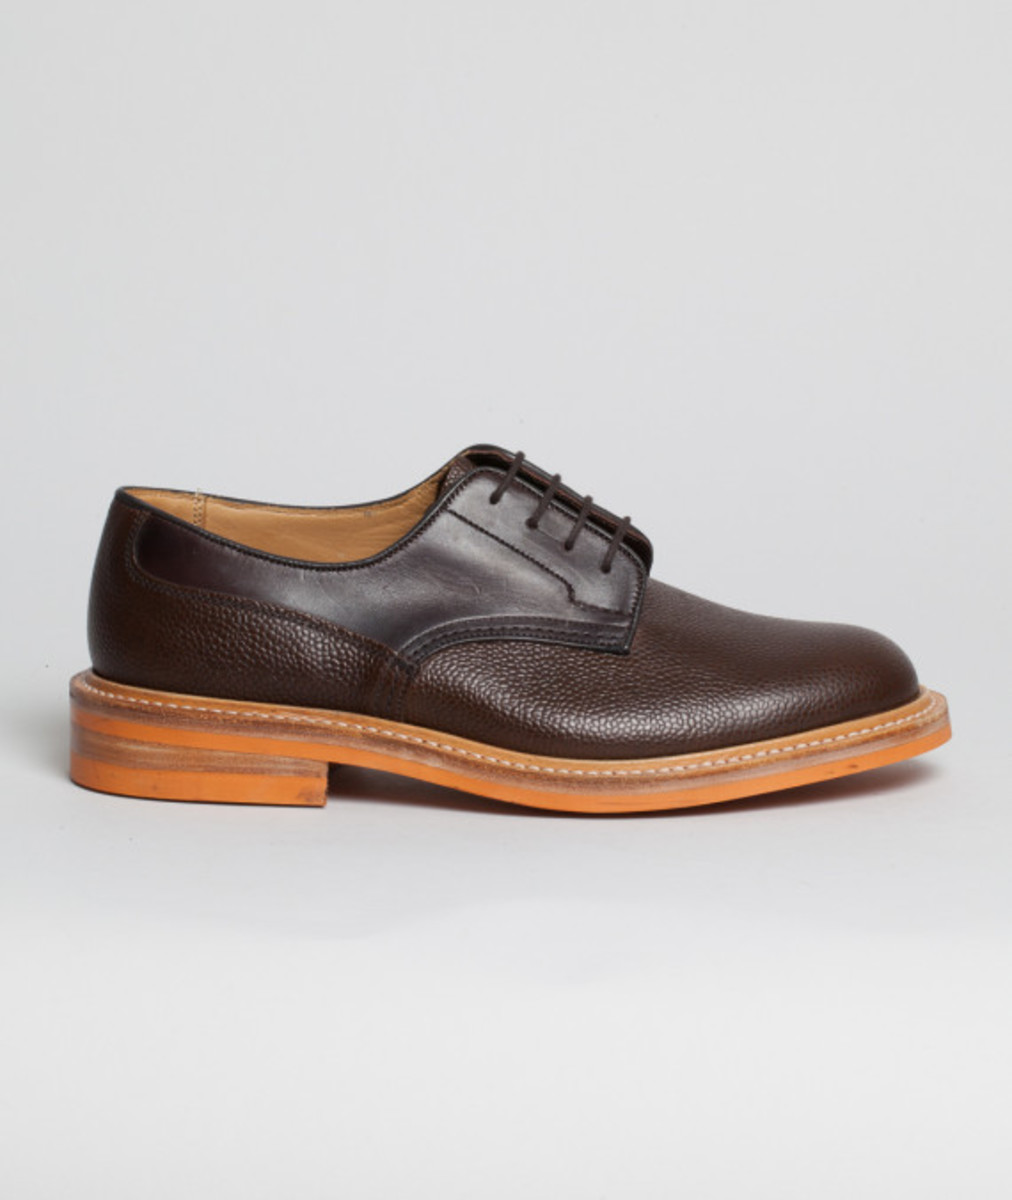 norse-projects-trickers-woodstock-03